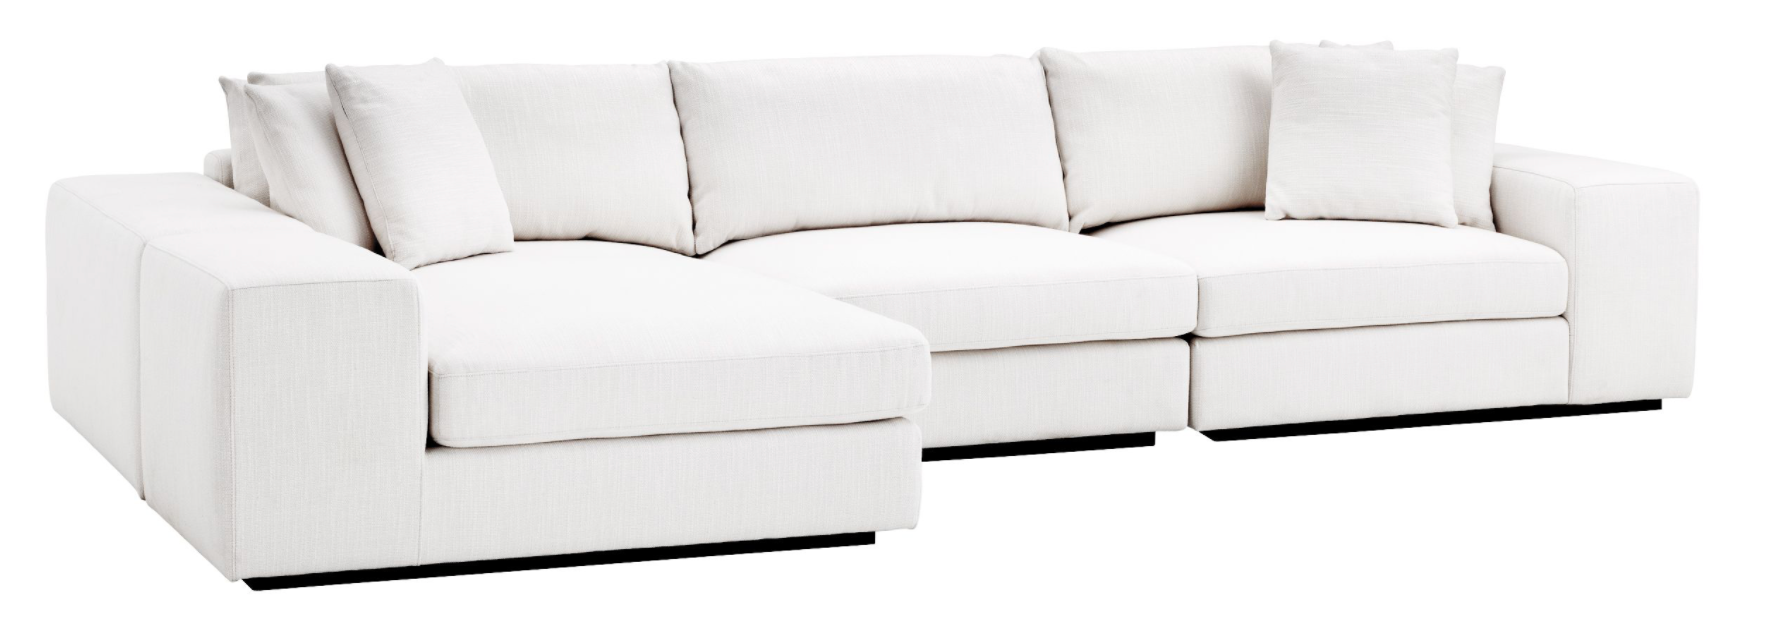 Sofa Vista Grande Lounge Avalon White